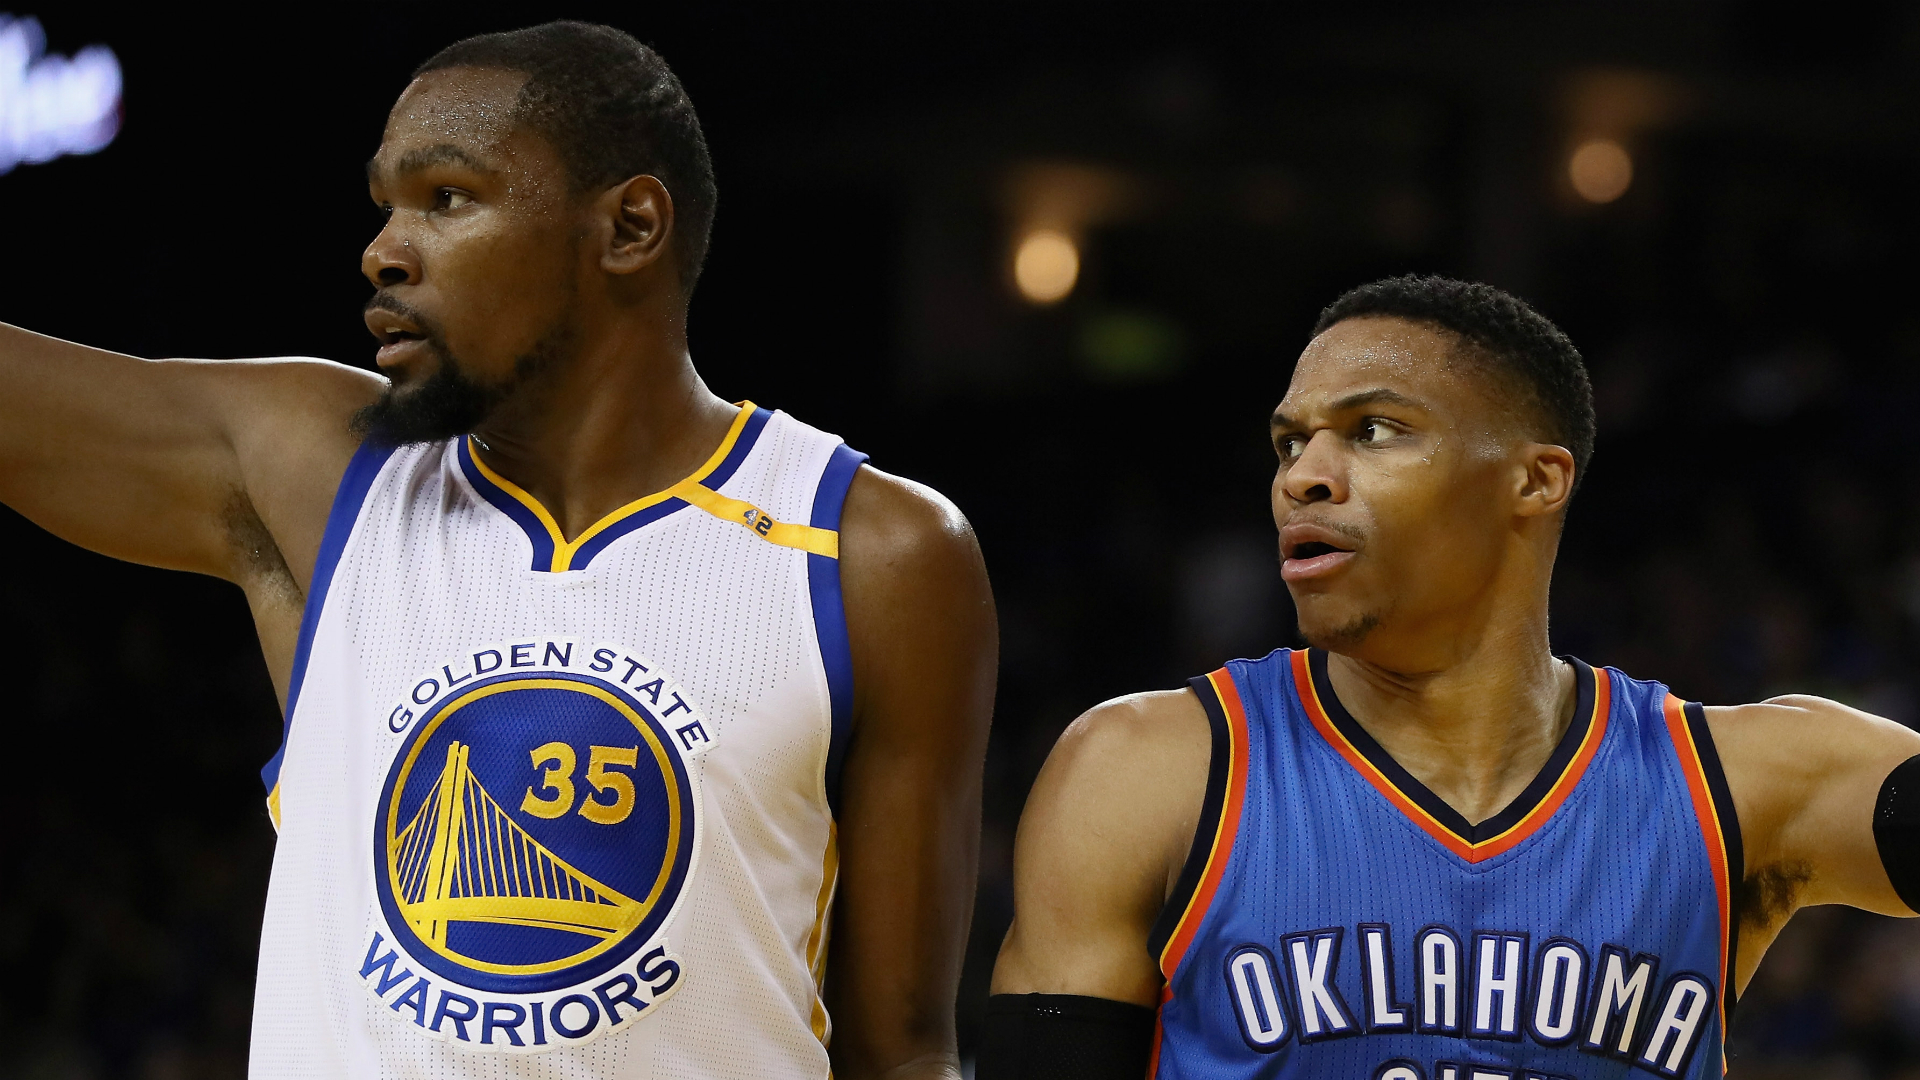 Stephen Curry, Russell Westbrook at center of Thunder-Warriors scuffle